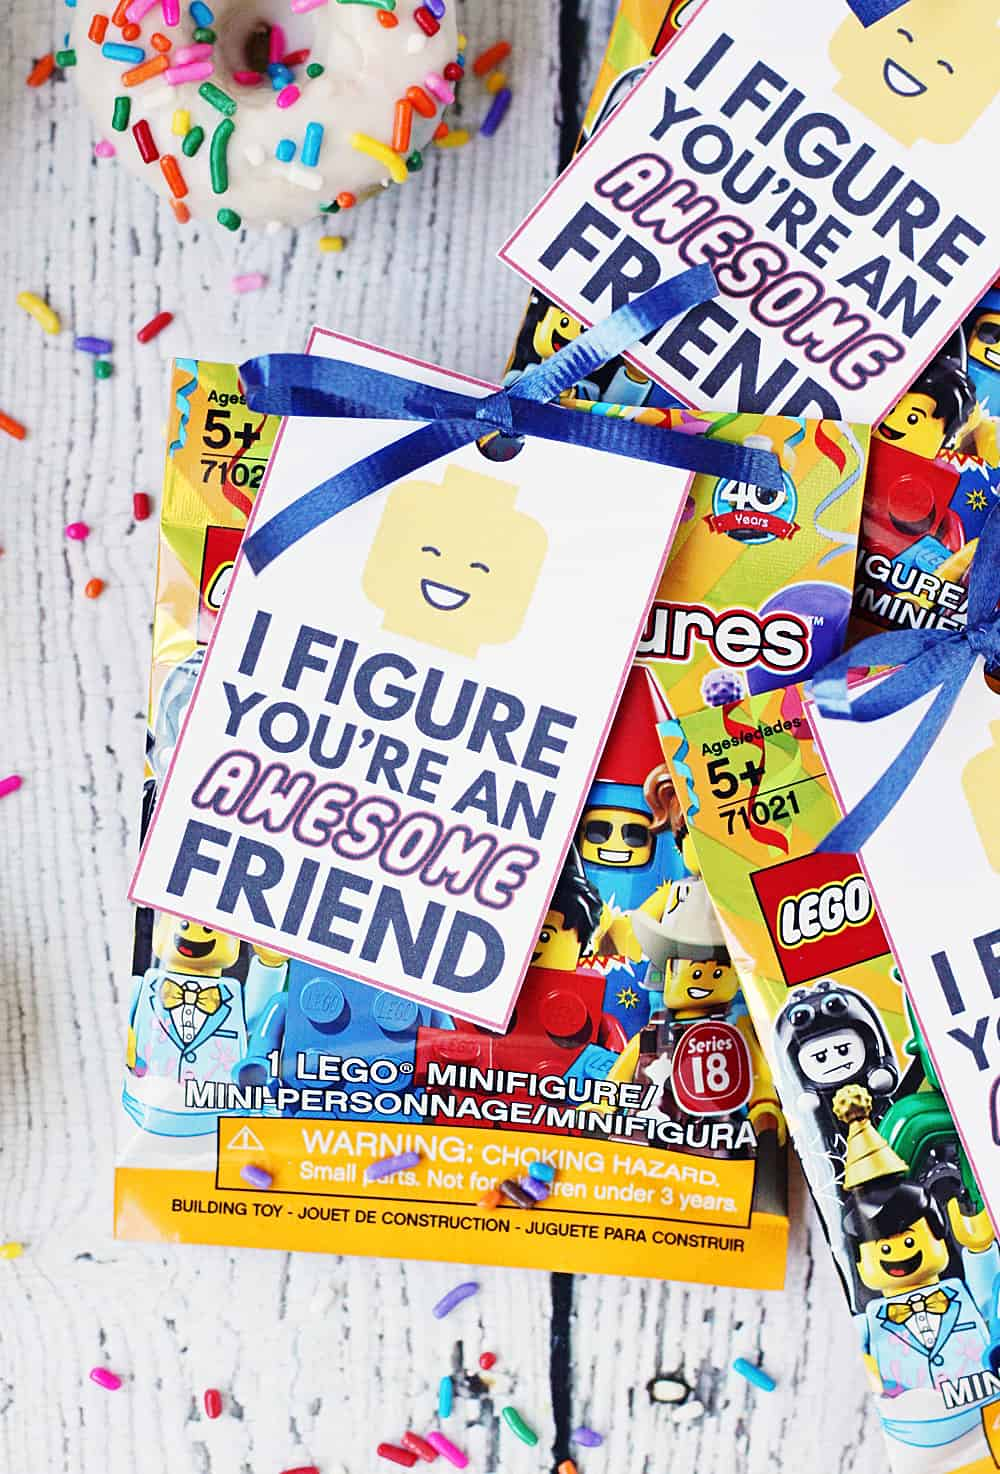 FREE Printable LEGO Gift Tag -- Having a LEGO party? Attach this free printable LEGO gift tag to one of the new collectible LEGO minifigures or any LEGO minifig for the perfect party guest thank-you! #lego #minifig #minifigure #legoparty #birthday #gifttag #giftidea #printable #freeprintable #legoprintable #legobirthday